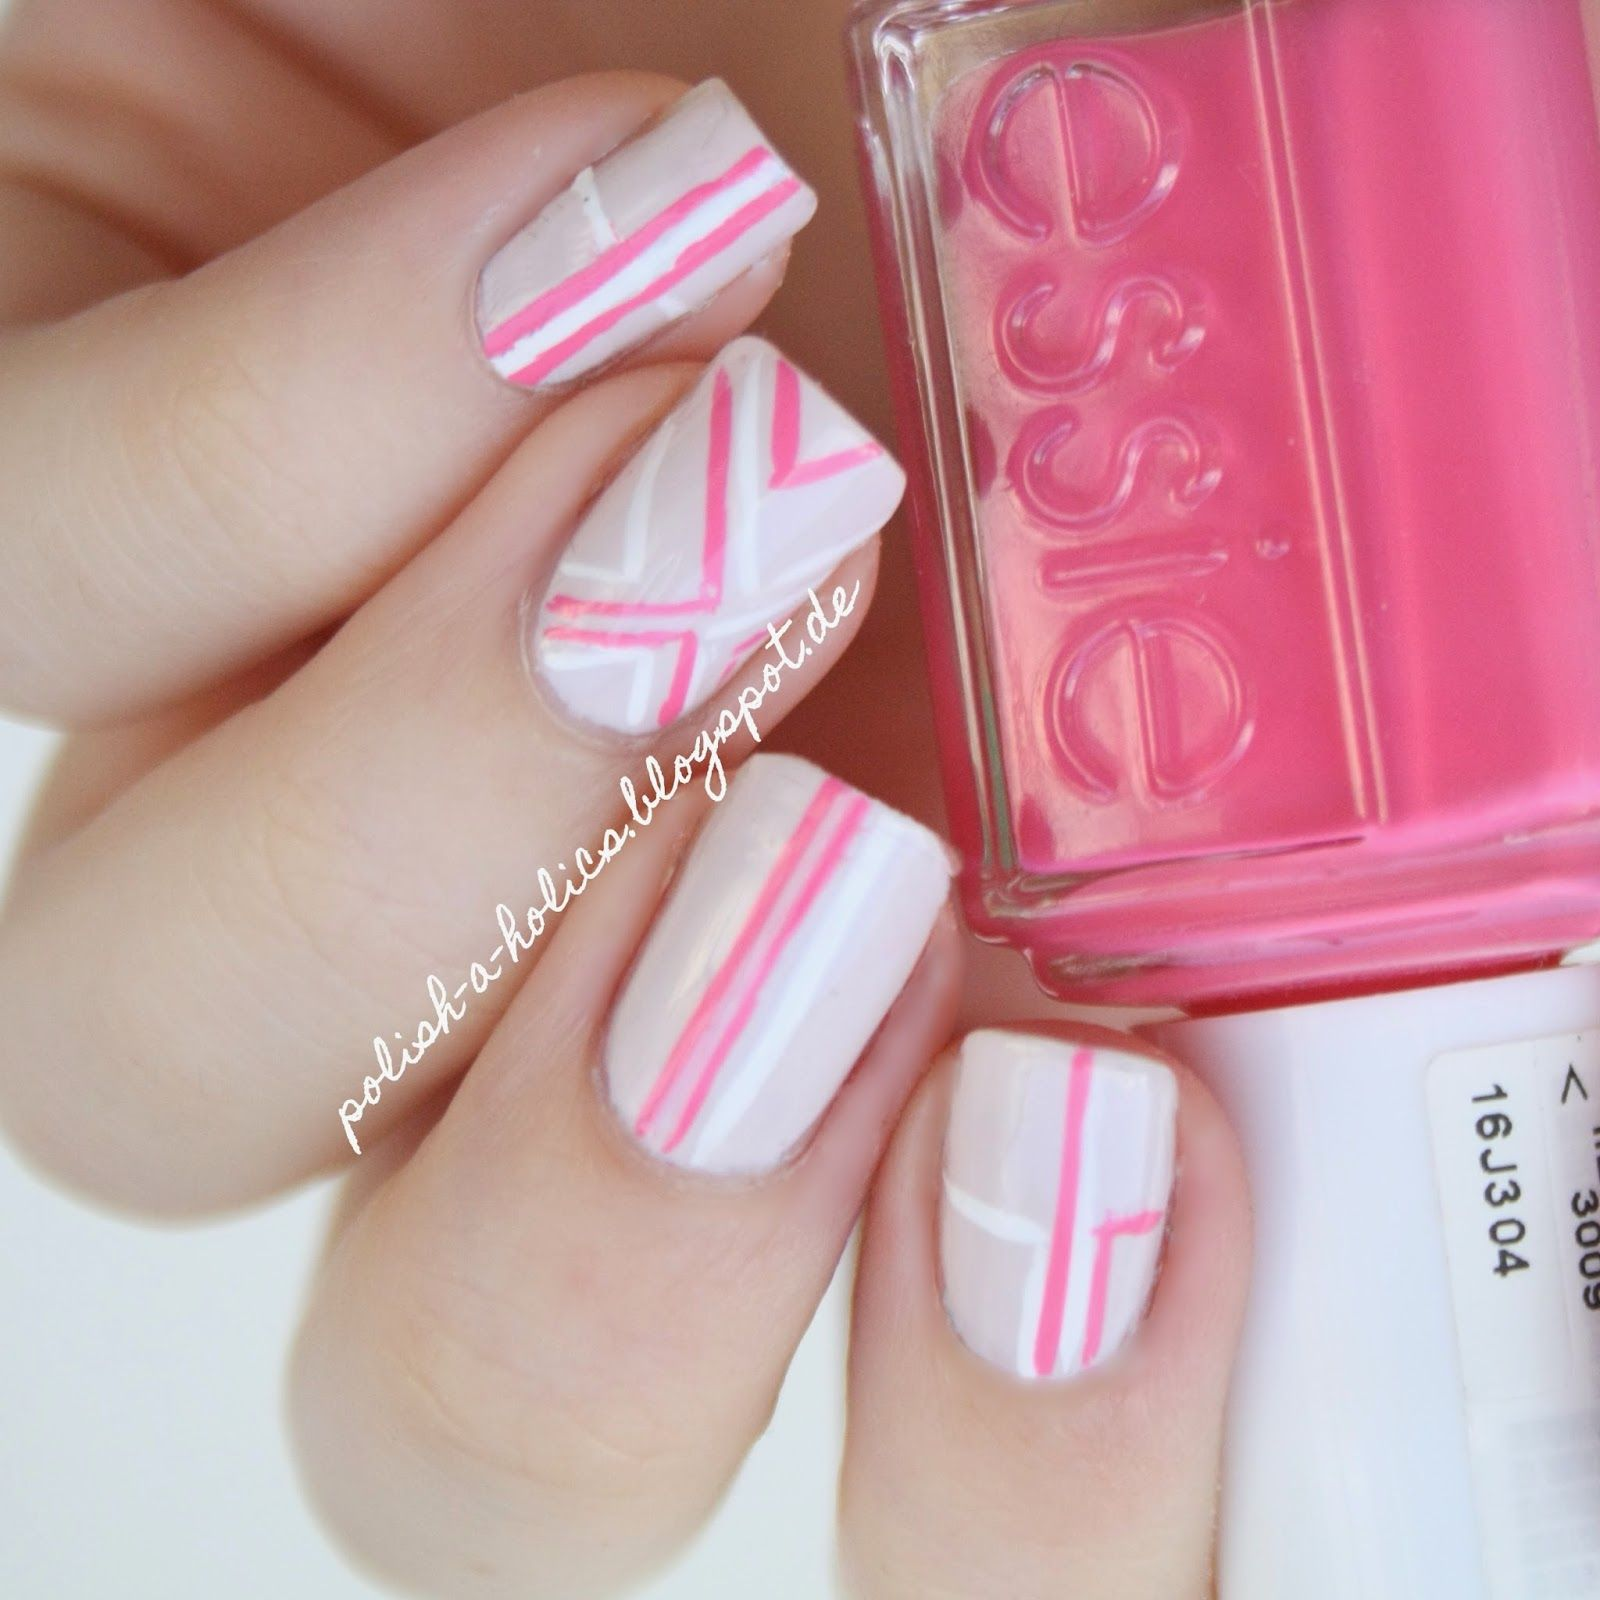 pink #stripes #nails #manicure #nude #essie | My Nail Art | Pinterest